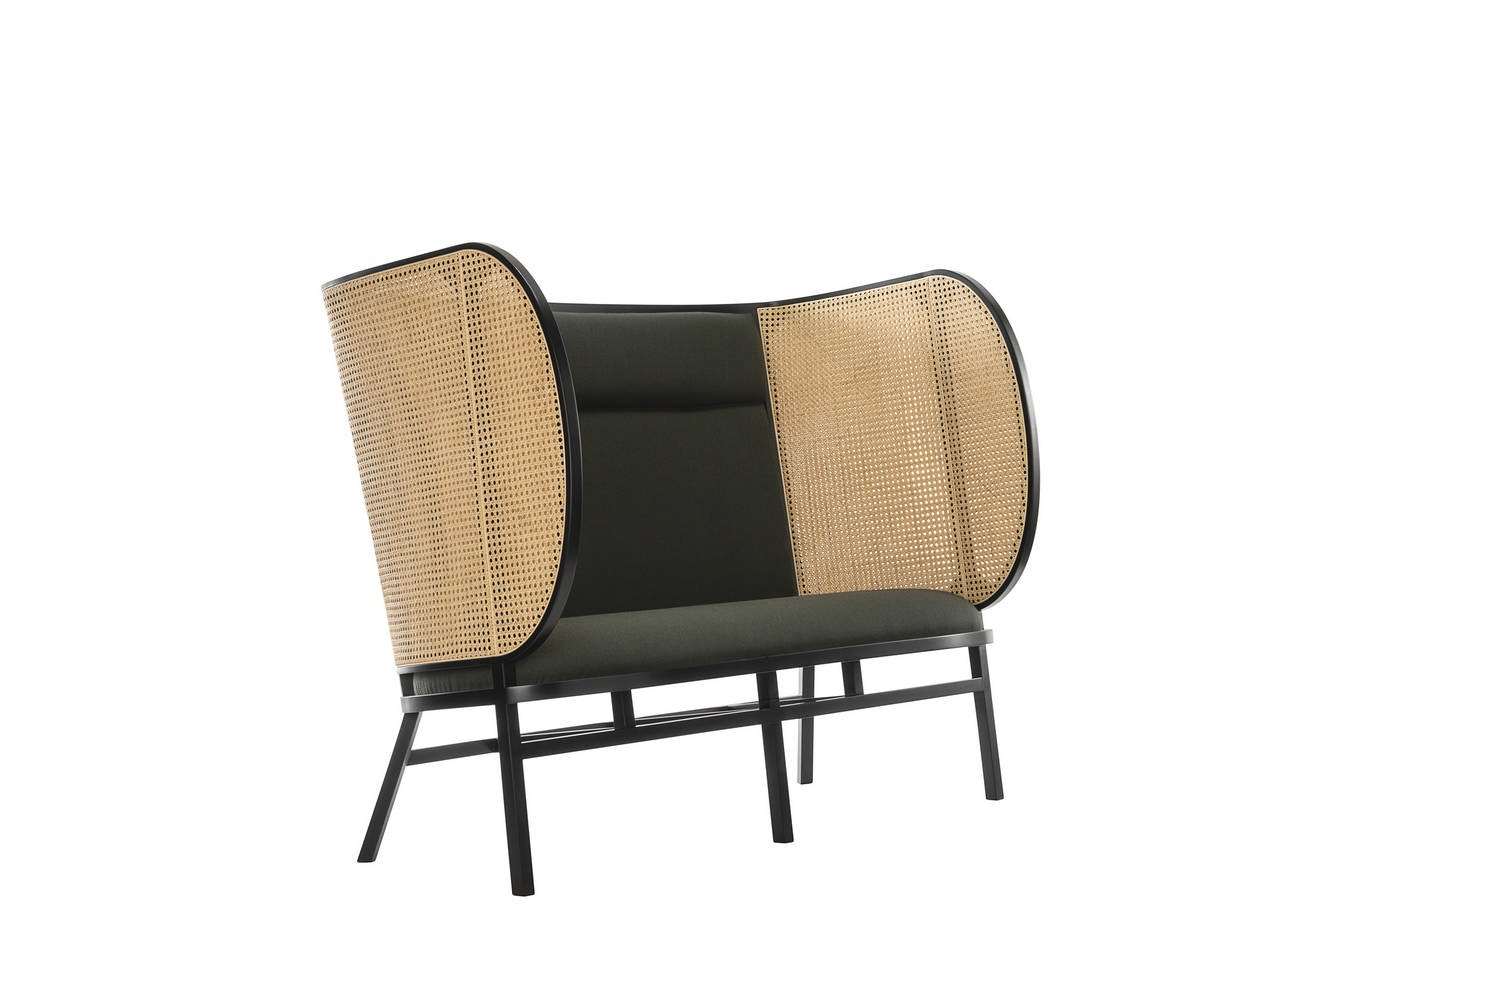 Hideout Loveseat by Front for Gebruder Thonet Vienna GmbH